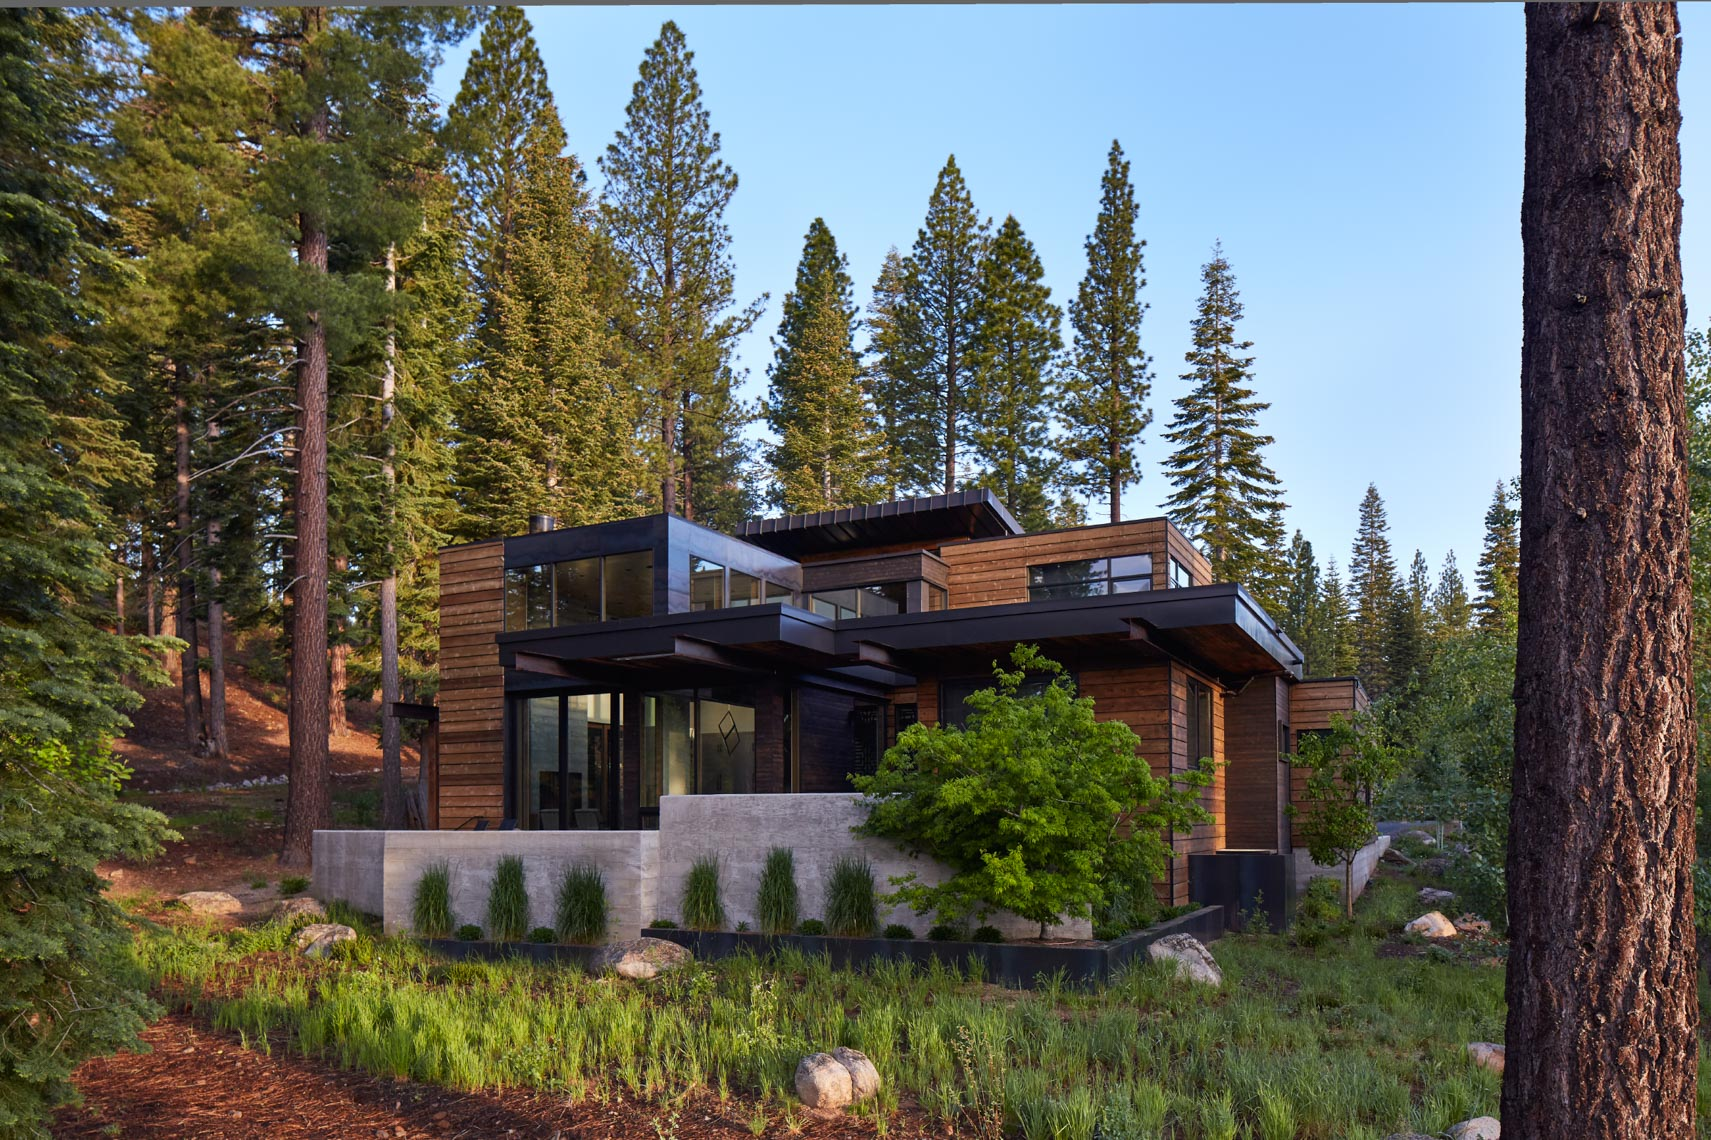 Modern wood and metal home in Tahoe mountains surrounded by green forrest